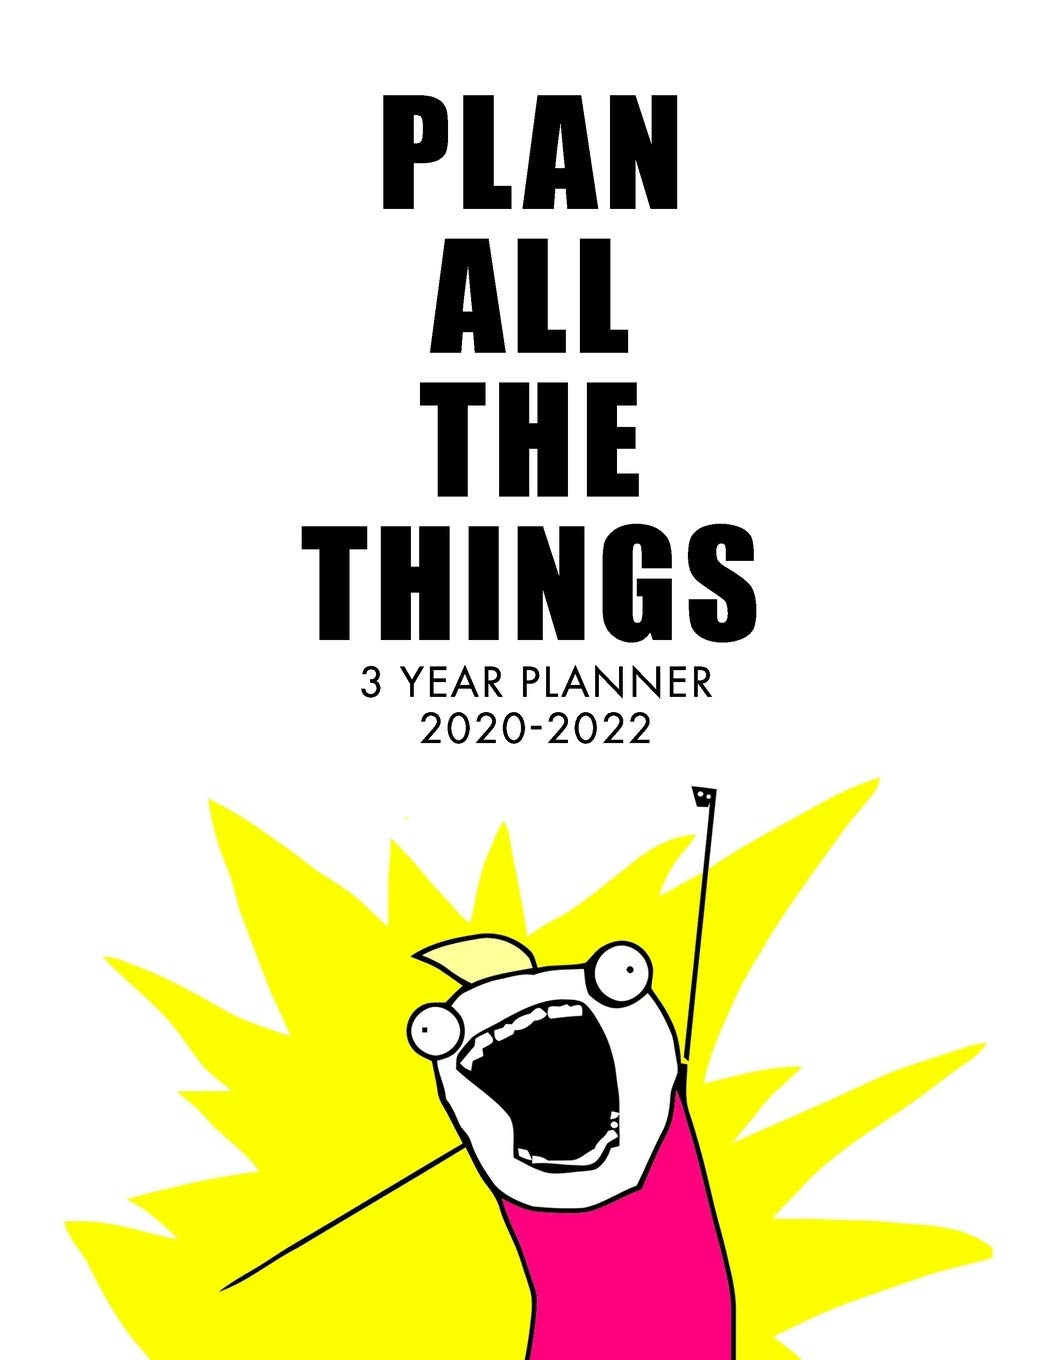 Meme Calendar 2022.Buy 3 Year Planner 3 Year Calendar Planner For January 2020 December 2022 Includes Contacts Notes Page 36 Month Planner 3 Year Monthly Planner Notes Section Funny Meme Inspirational